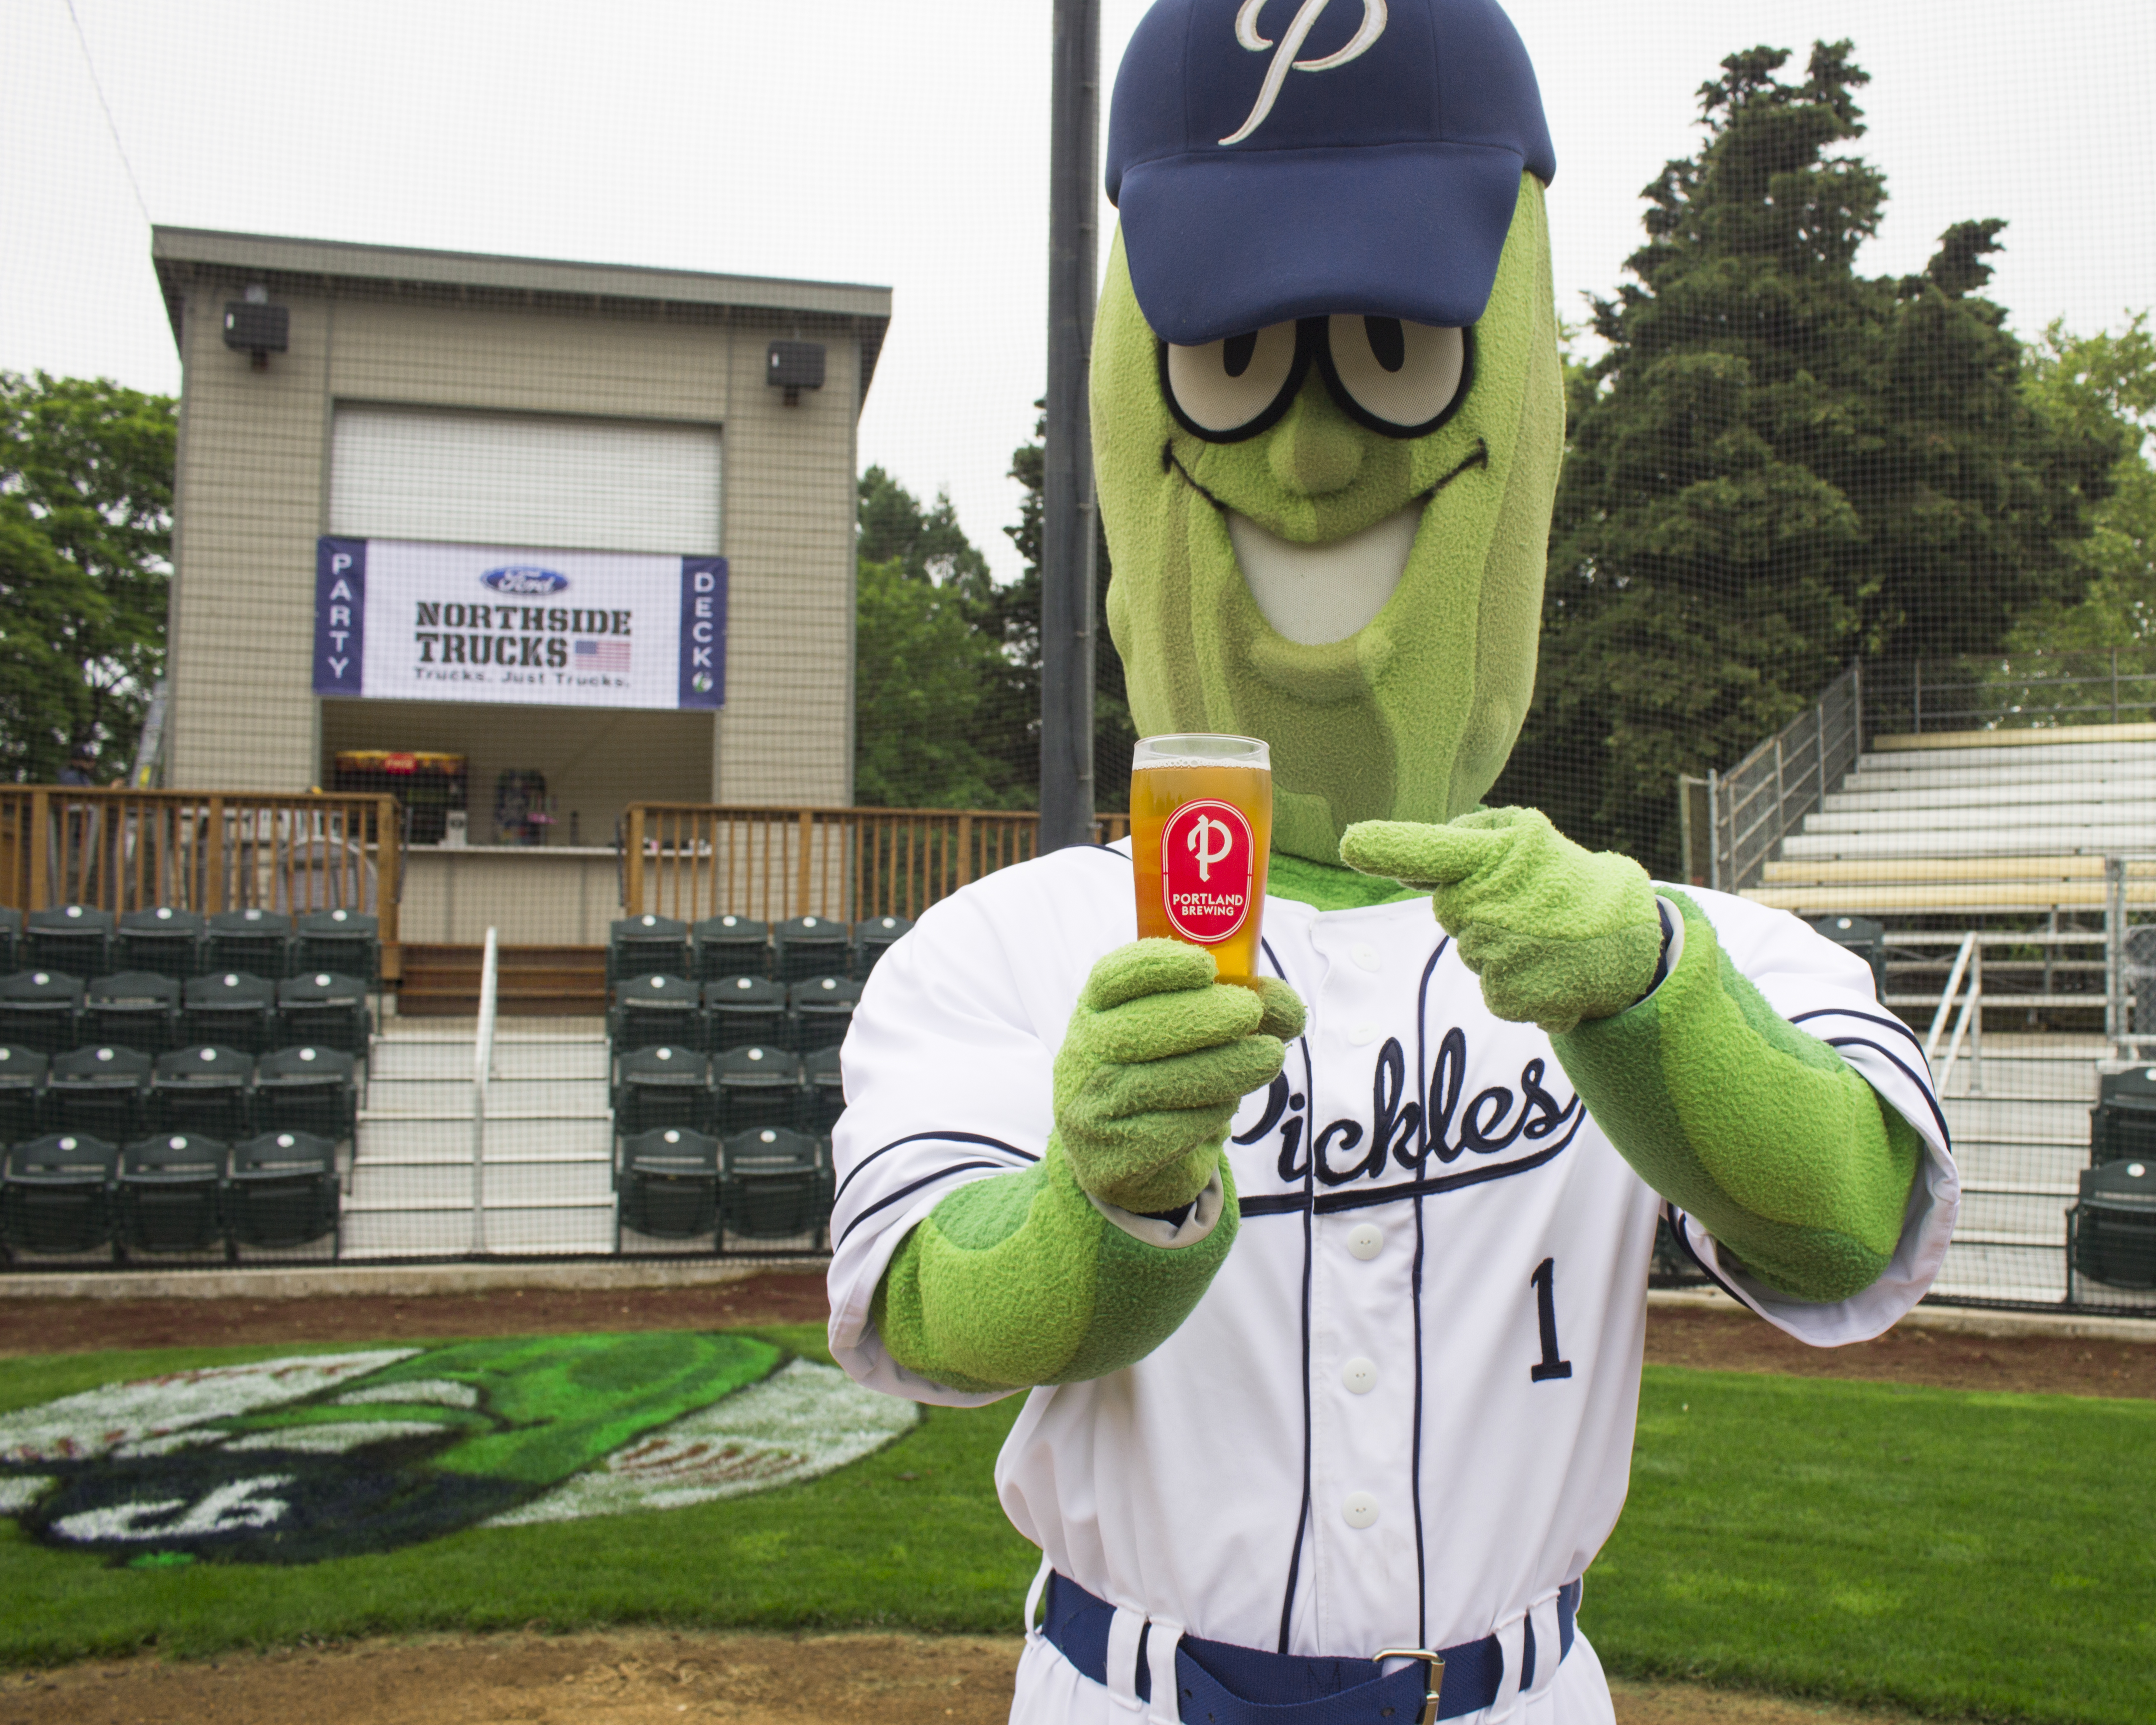 Dillon The Pickle cheers to game day. (image courtesy of Portland Brewing)